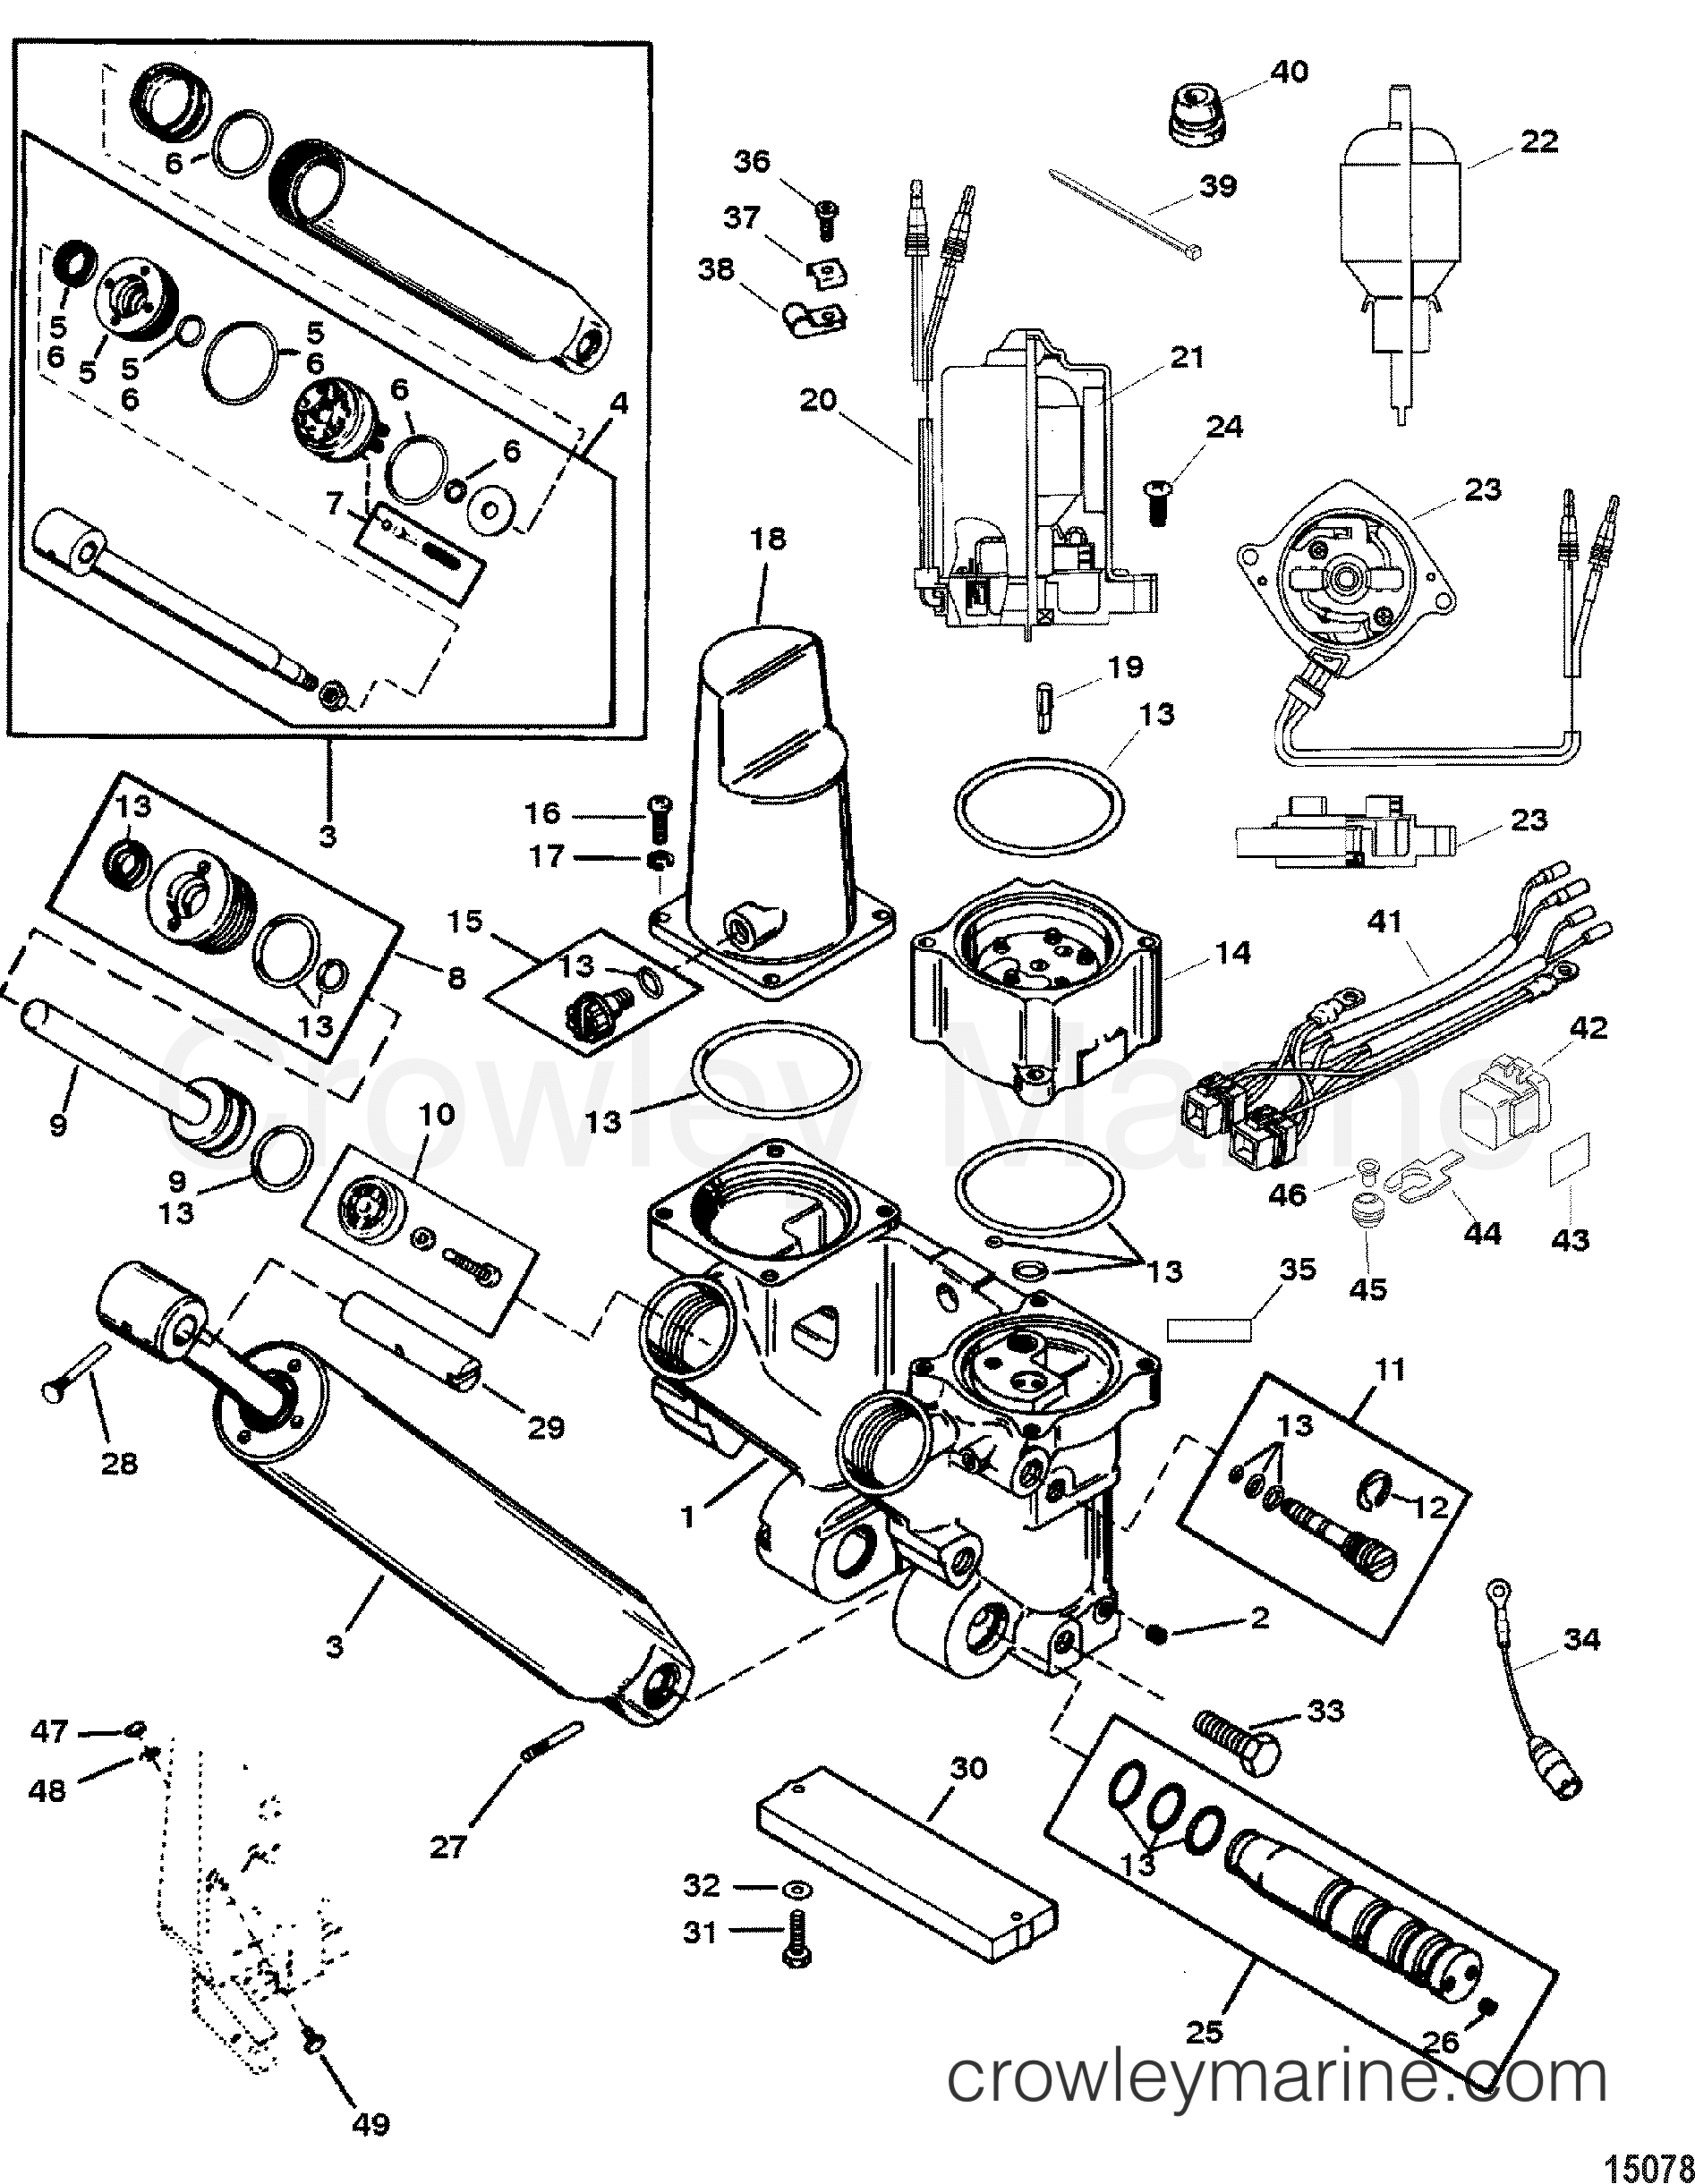 Power Trim And Tilt Kit(826729A4) - Various Years Rigging Parts Trim - Mercury Outboard Power Trim Wiring Diagram